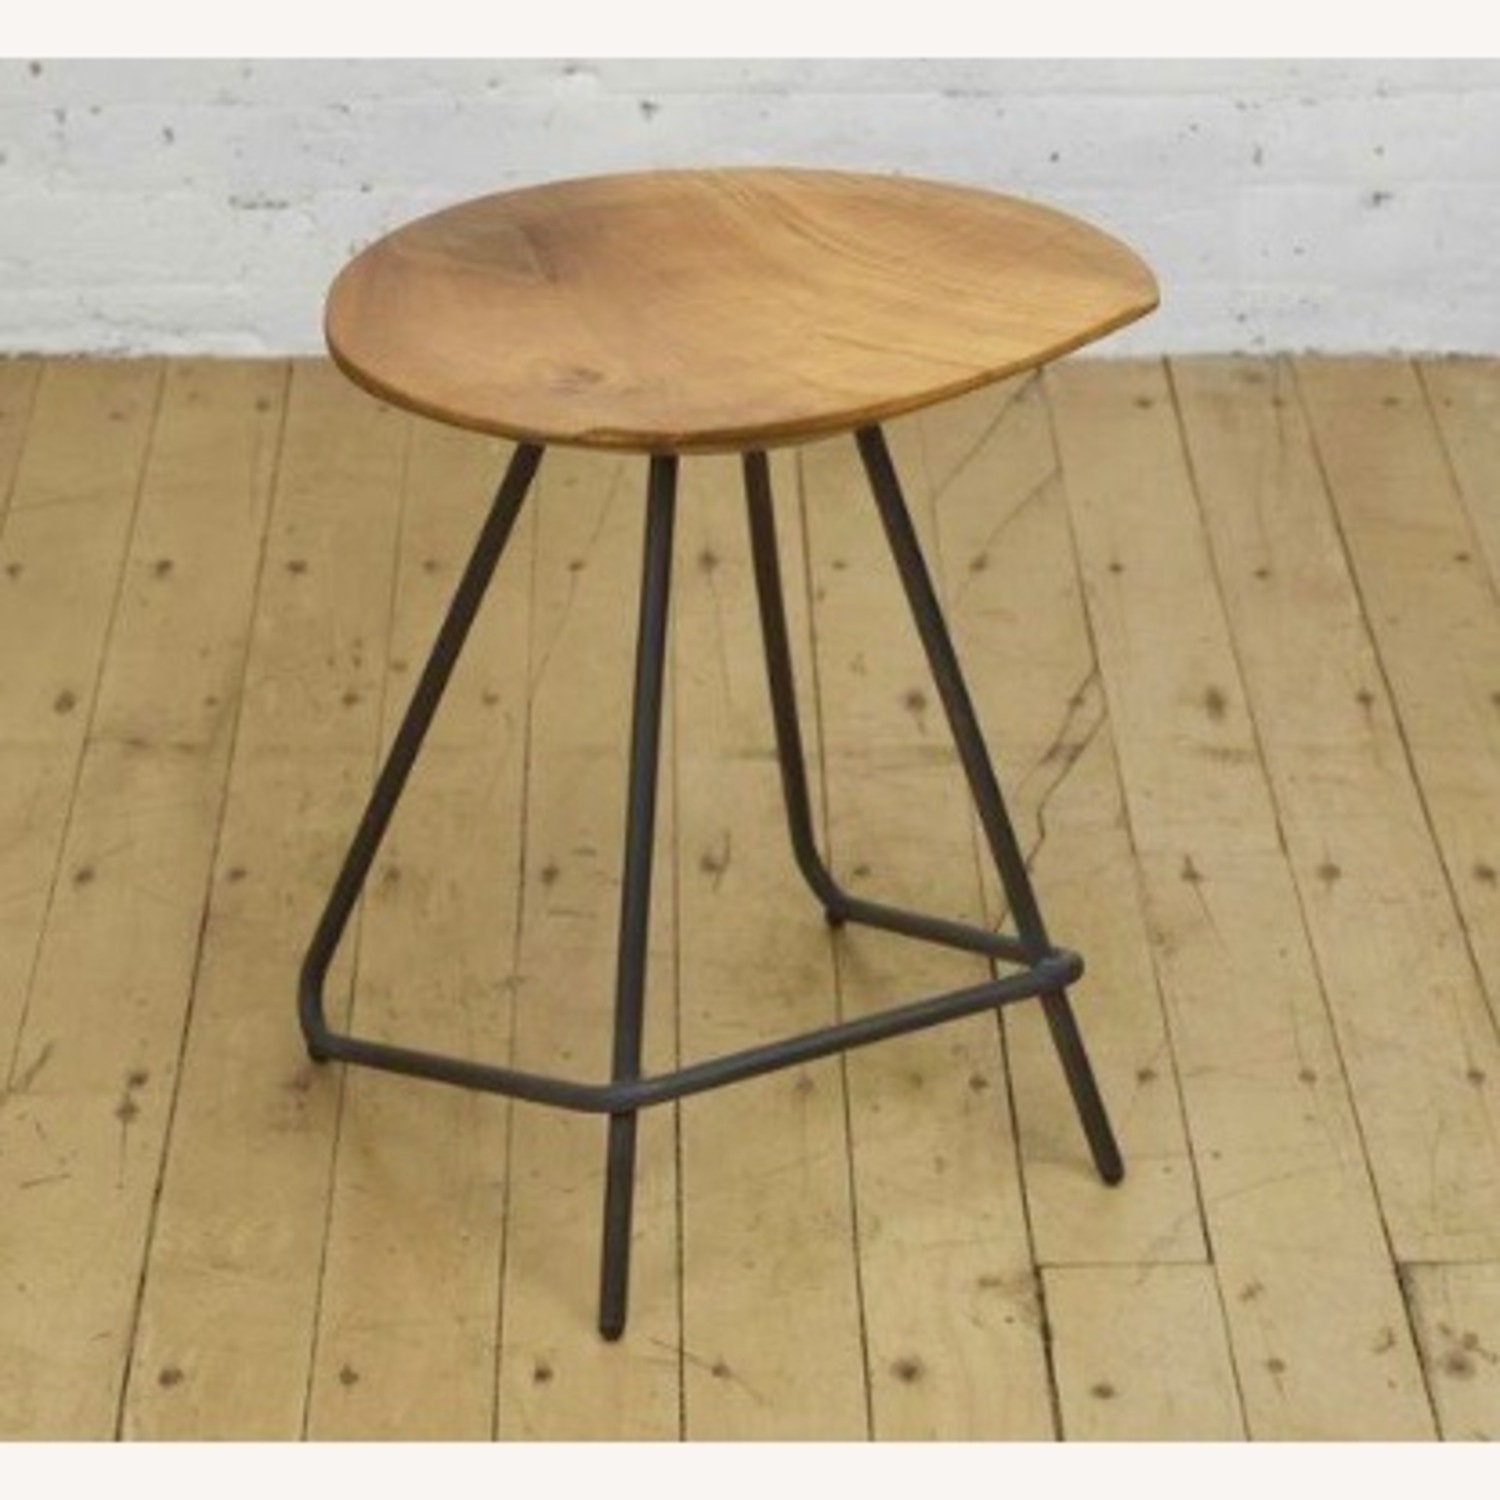 From The Source Solid Teak Stools - image-5